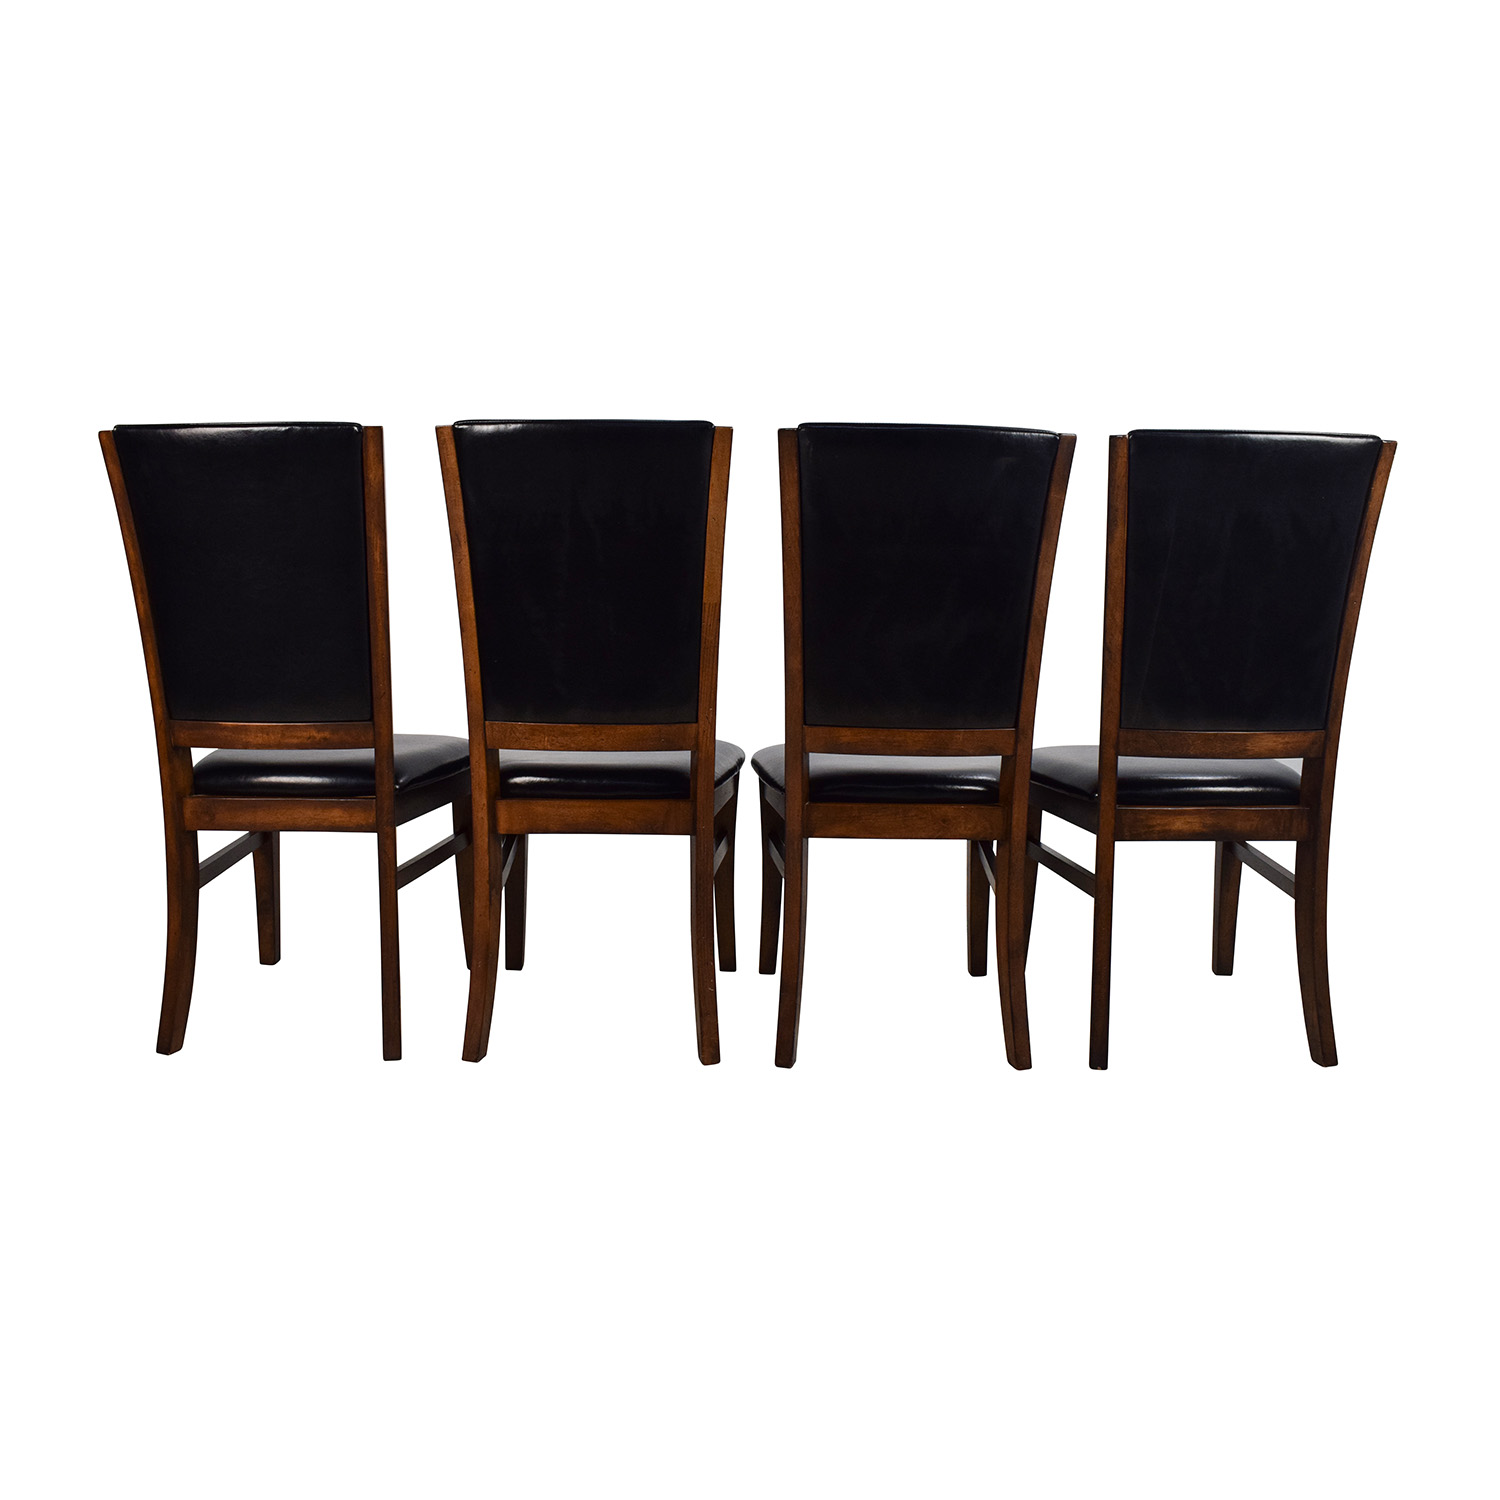 76 Off World Market World Market Leather And Wood Dining Chairs Chairs